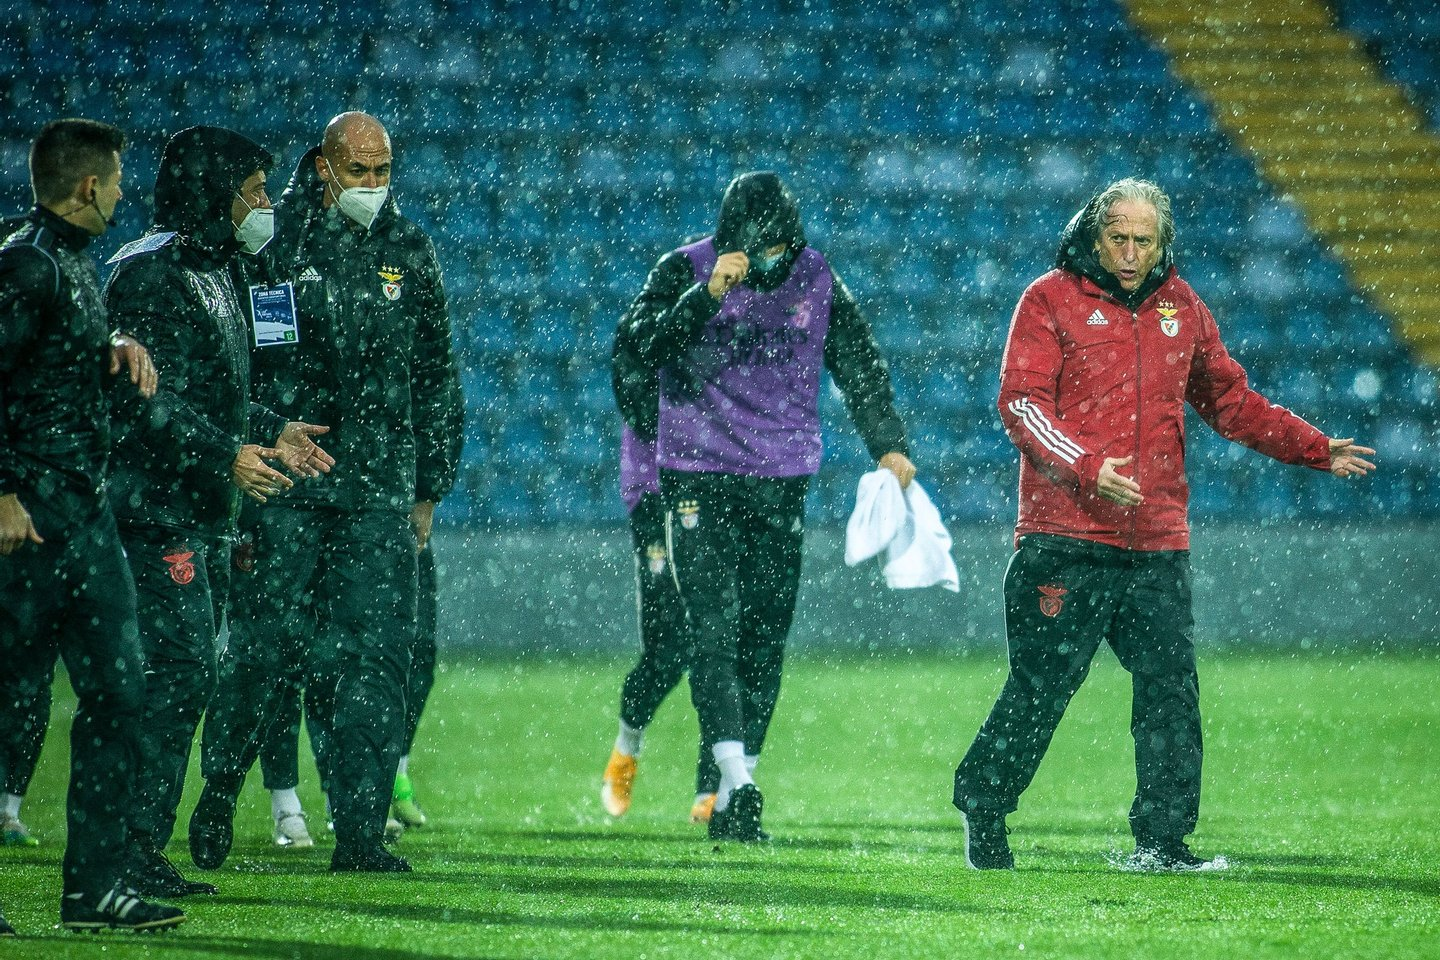 Benfica head coach Jorge Jesus (R) and his staff leave the field after ther Portuguese First League soccer match with Santa Clara was interrupted due to heavy rains at Sao Miguel Stadium, Ponta Delgada, Soa Miguel Island, Azores, 3rd January 2021. The match was interrupted and schedulled to be played tomorrow due to the heavy rains that fell this afternoon. EDUARDO COSTA/LUSA